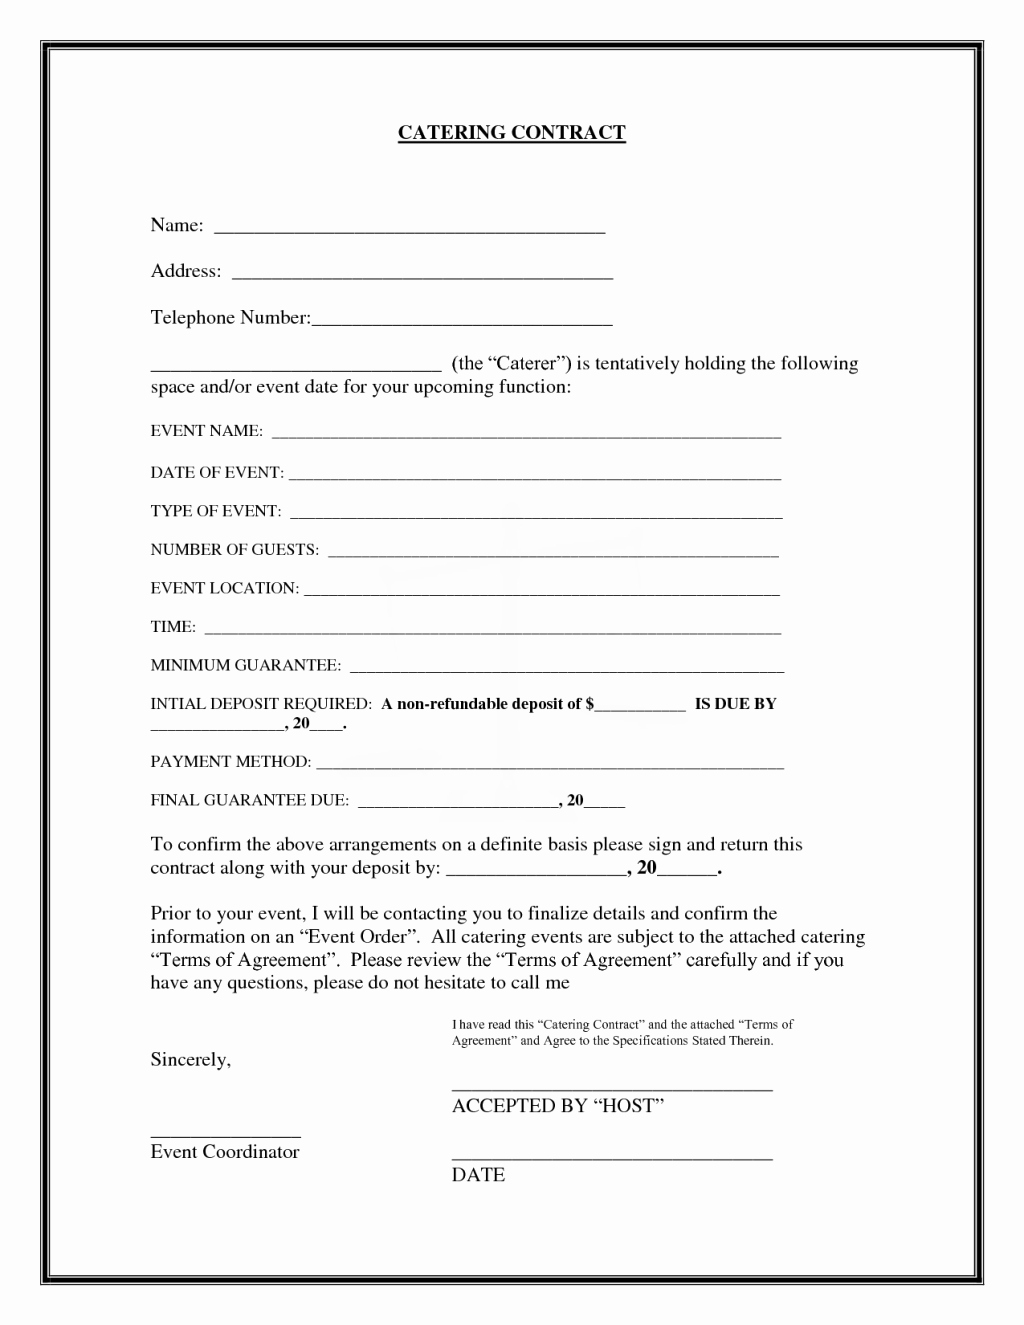 Food Service Contract Template Best Of Interesting Blank Catering Contract Template Example with Blank and Fillable Detail Information